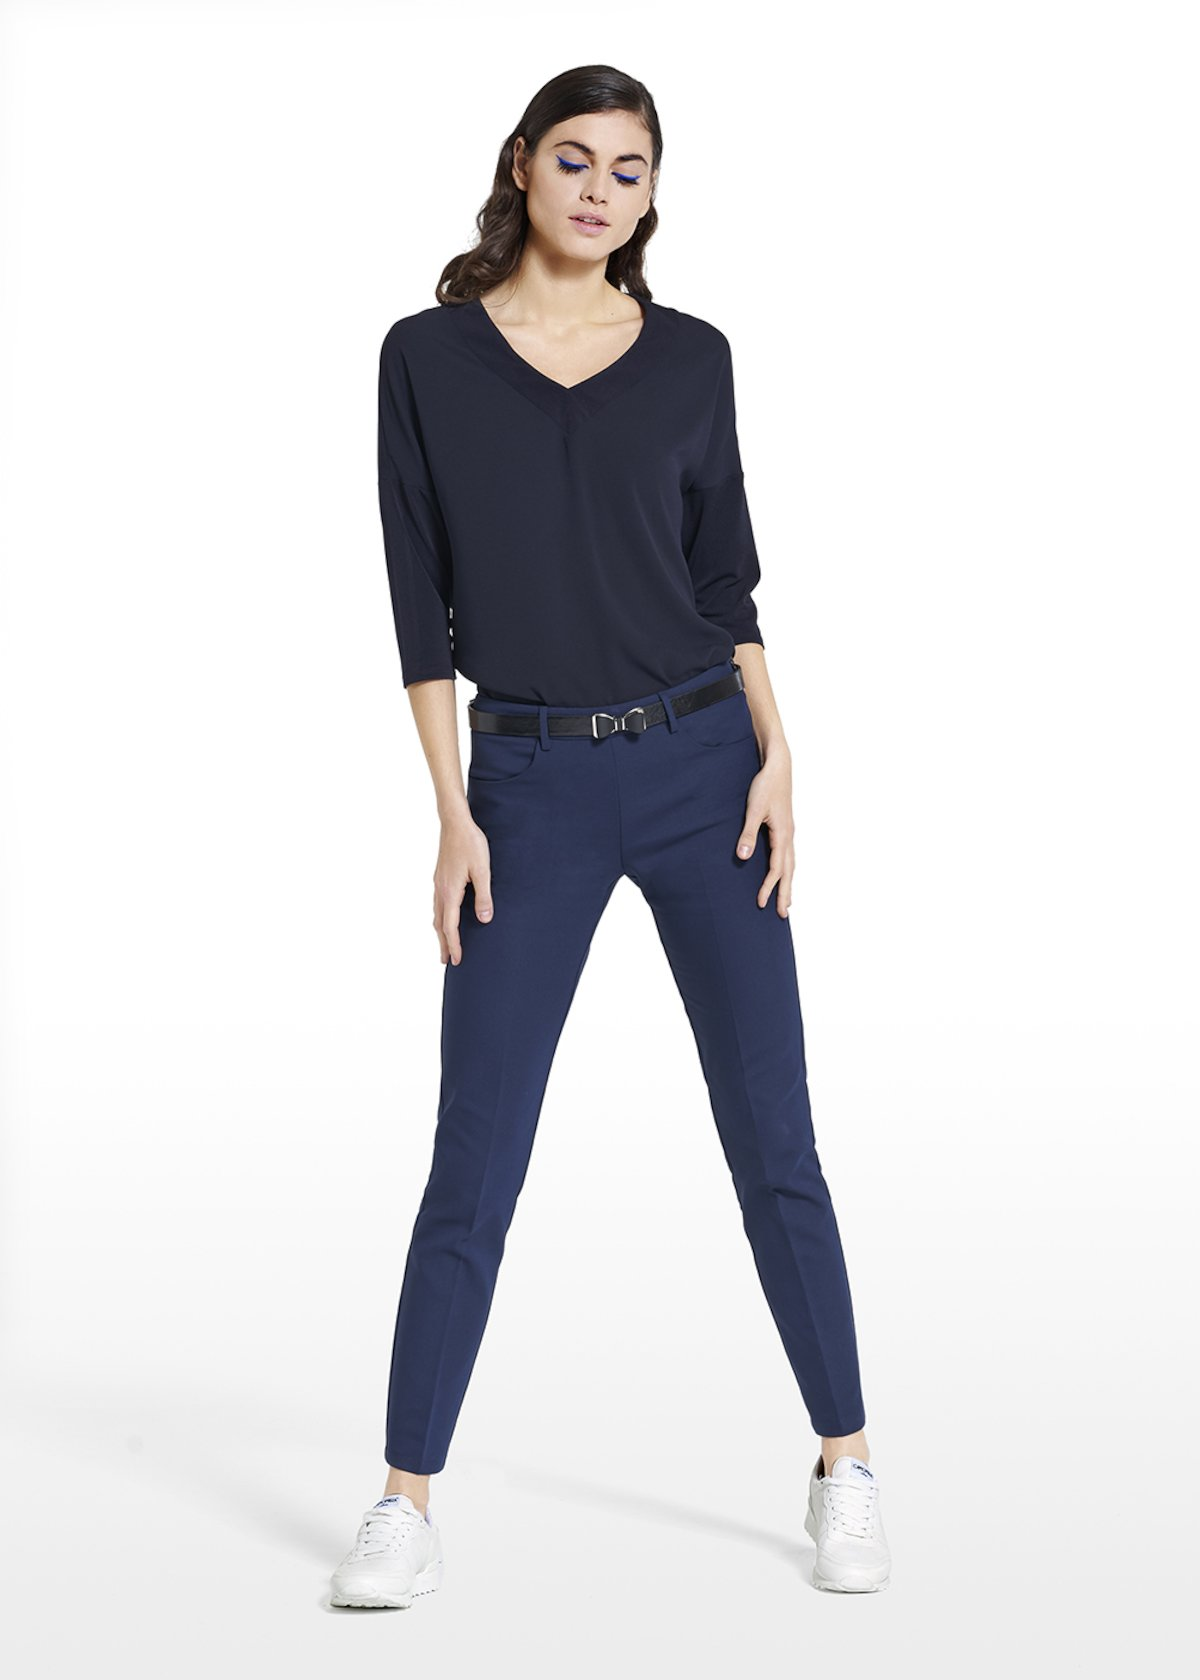 T-shirt Shyla with 7/8 sleeves and V-neckline - Blue Navy - Woman - Category image